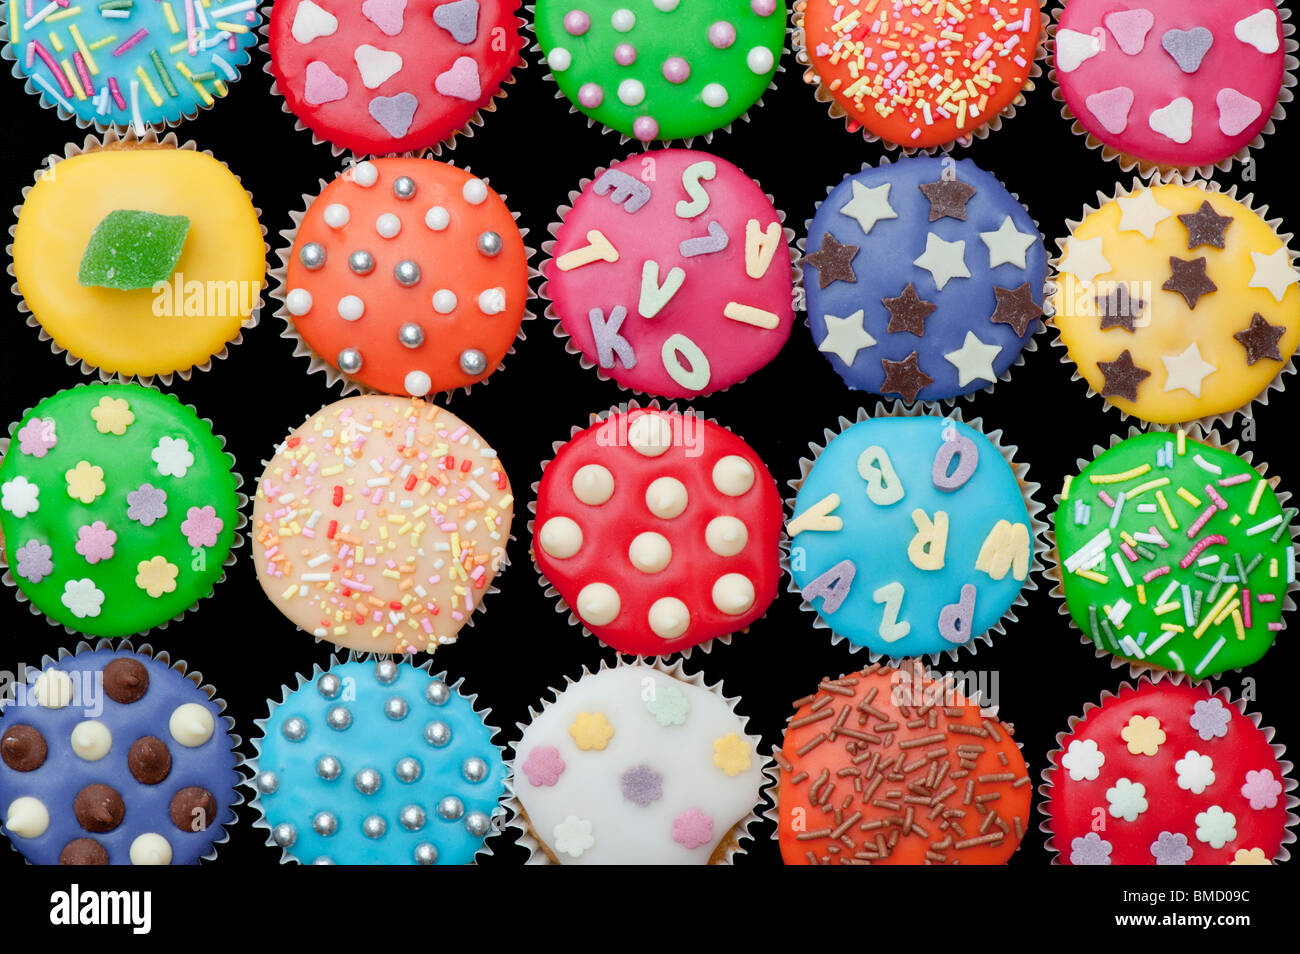 Colourful mini cupcakes on a black background - Stock Image